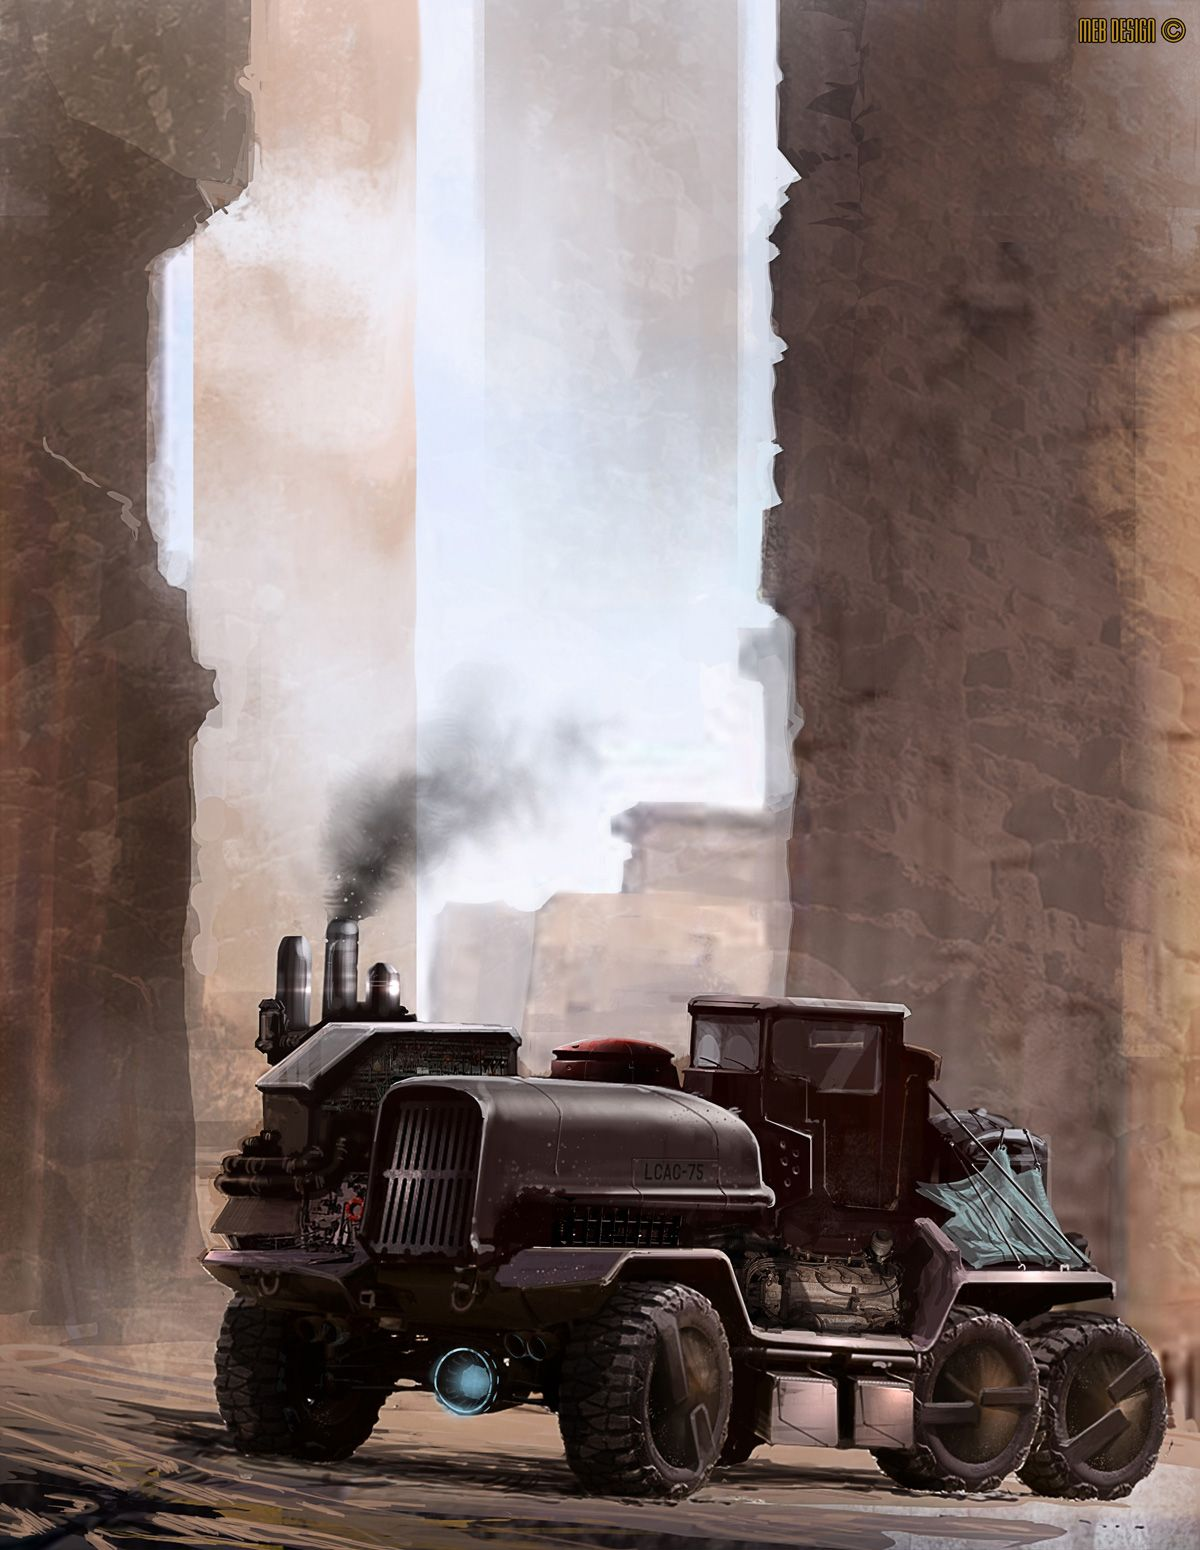 Trucks of the Future Concept cars, Dieselpunk vehicles